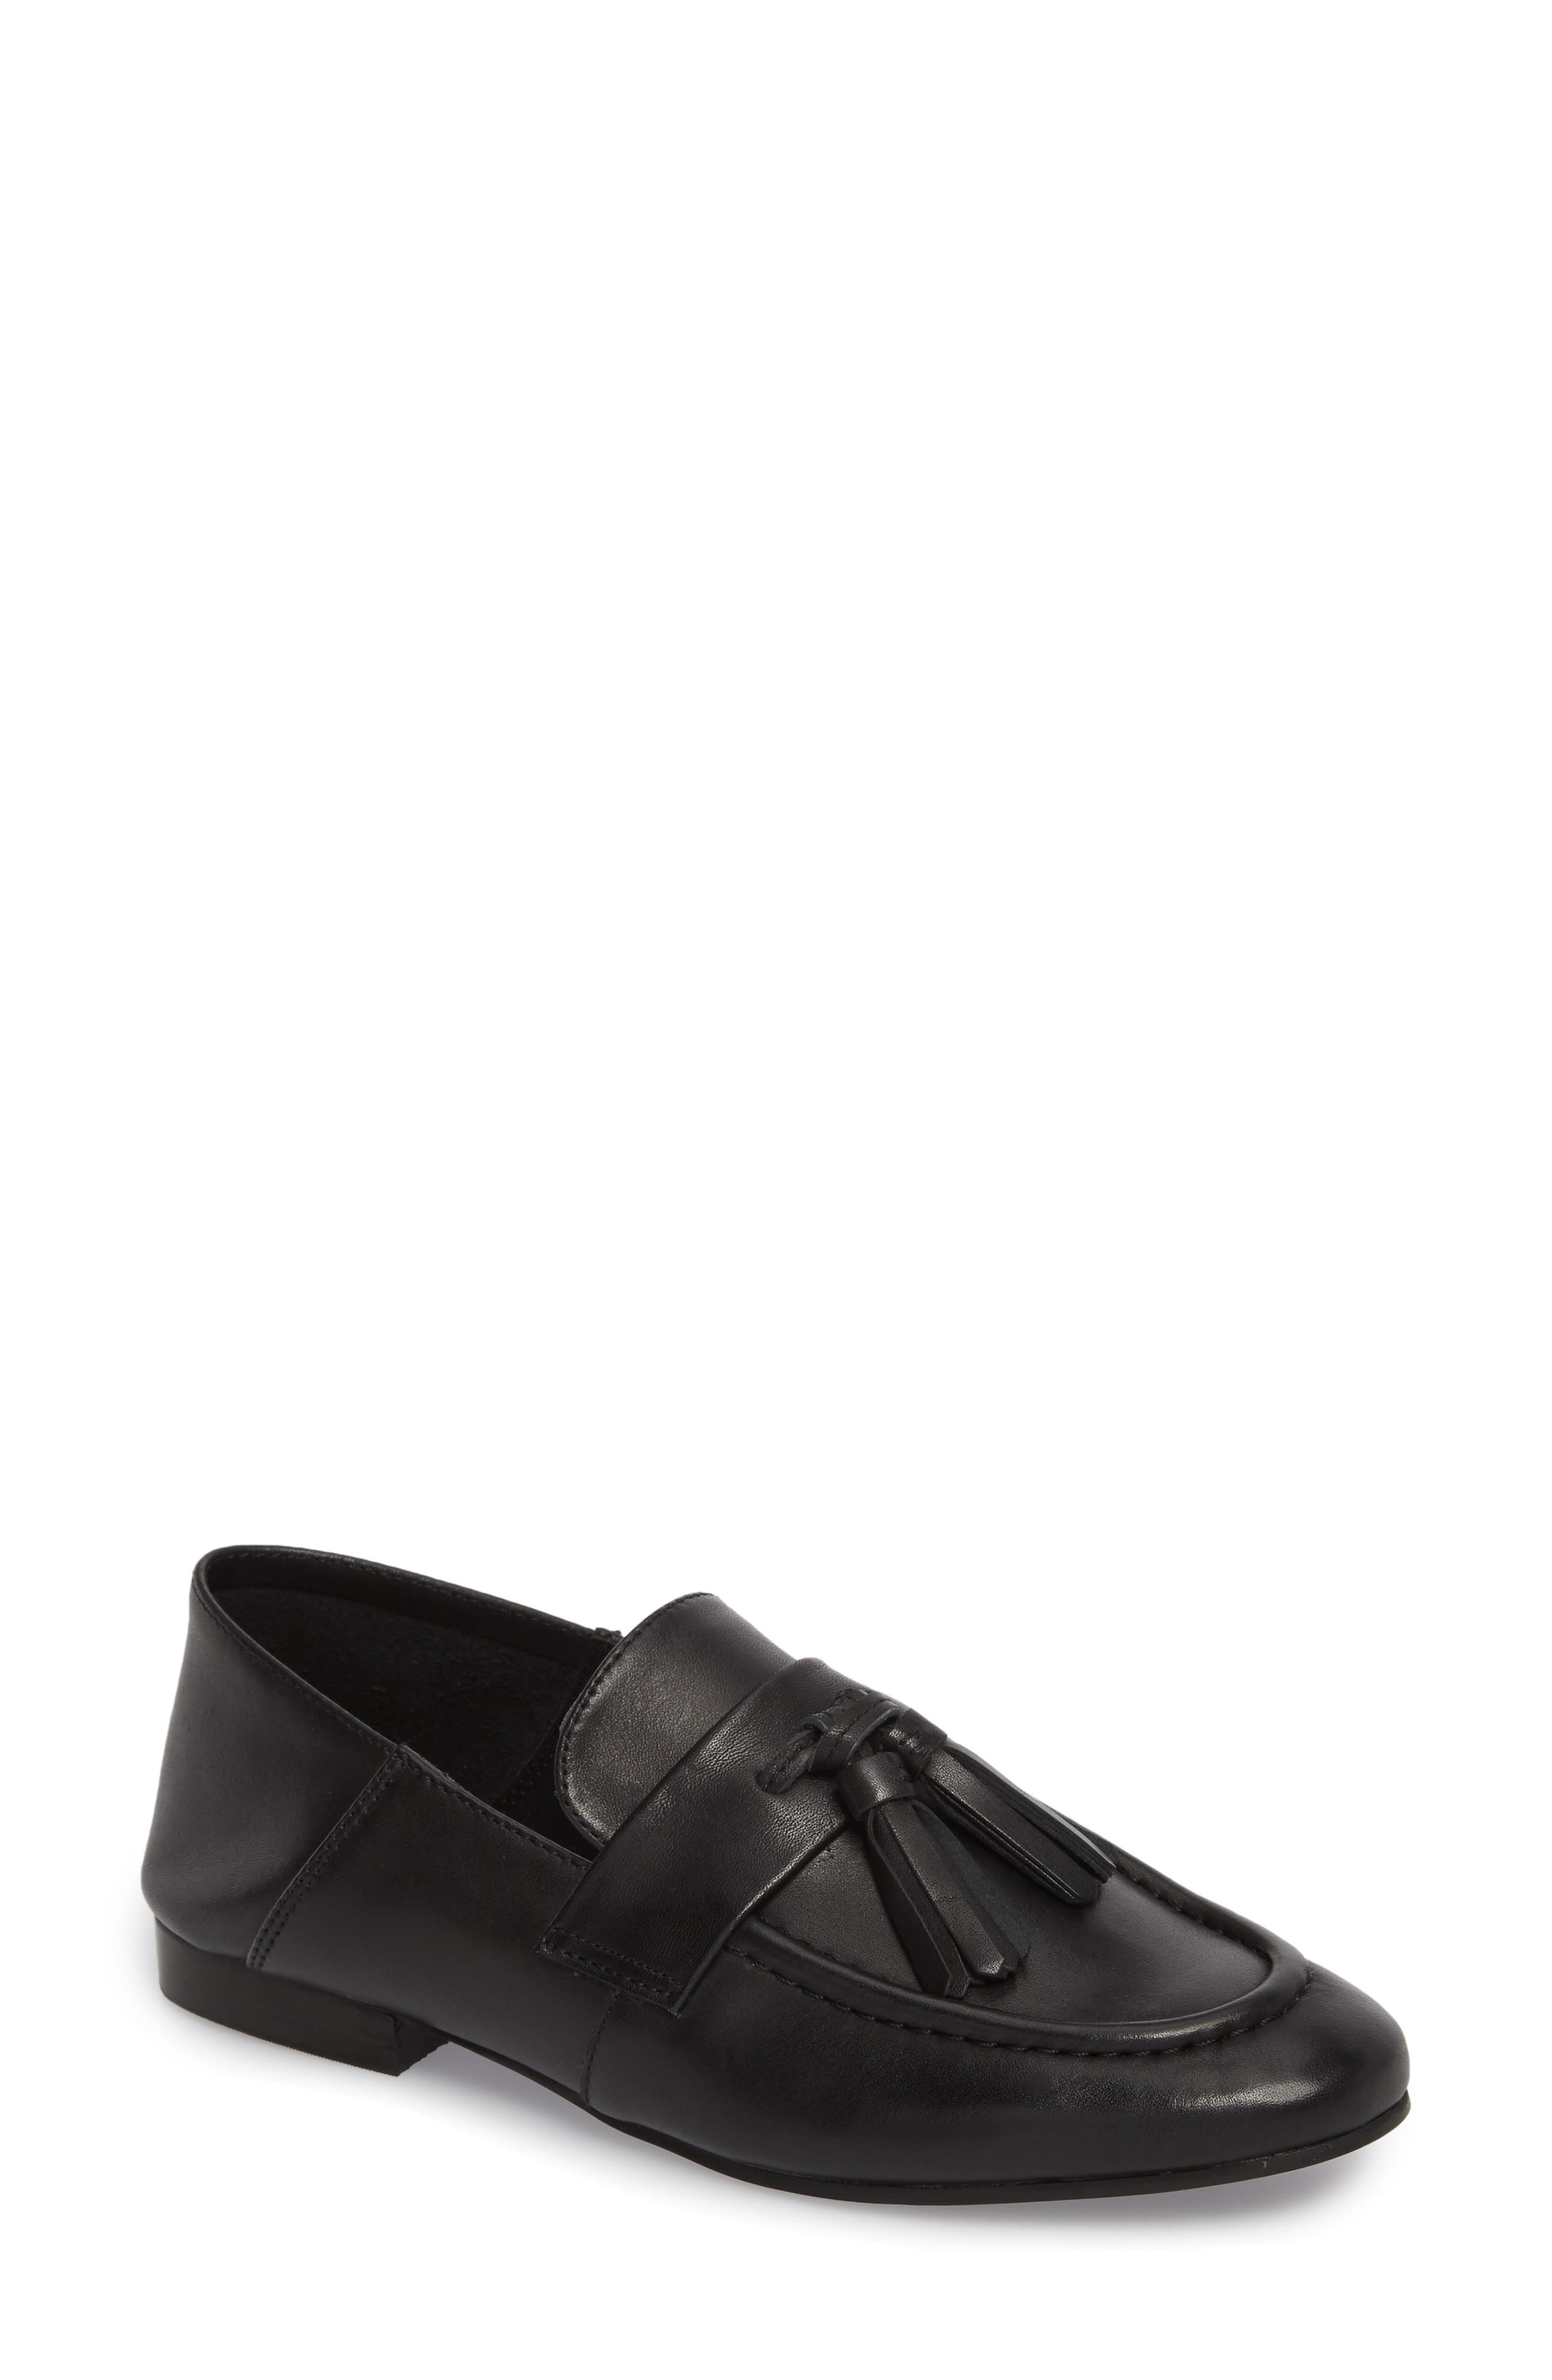 Beck Convertible Tasseled Loafer,                             Main thumbnail 1, color,                             Black Leather